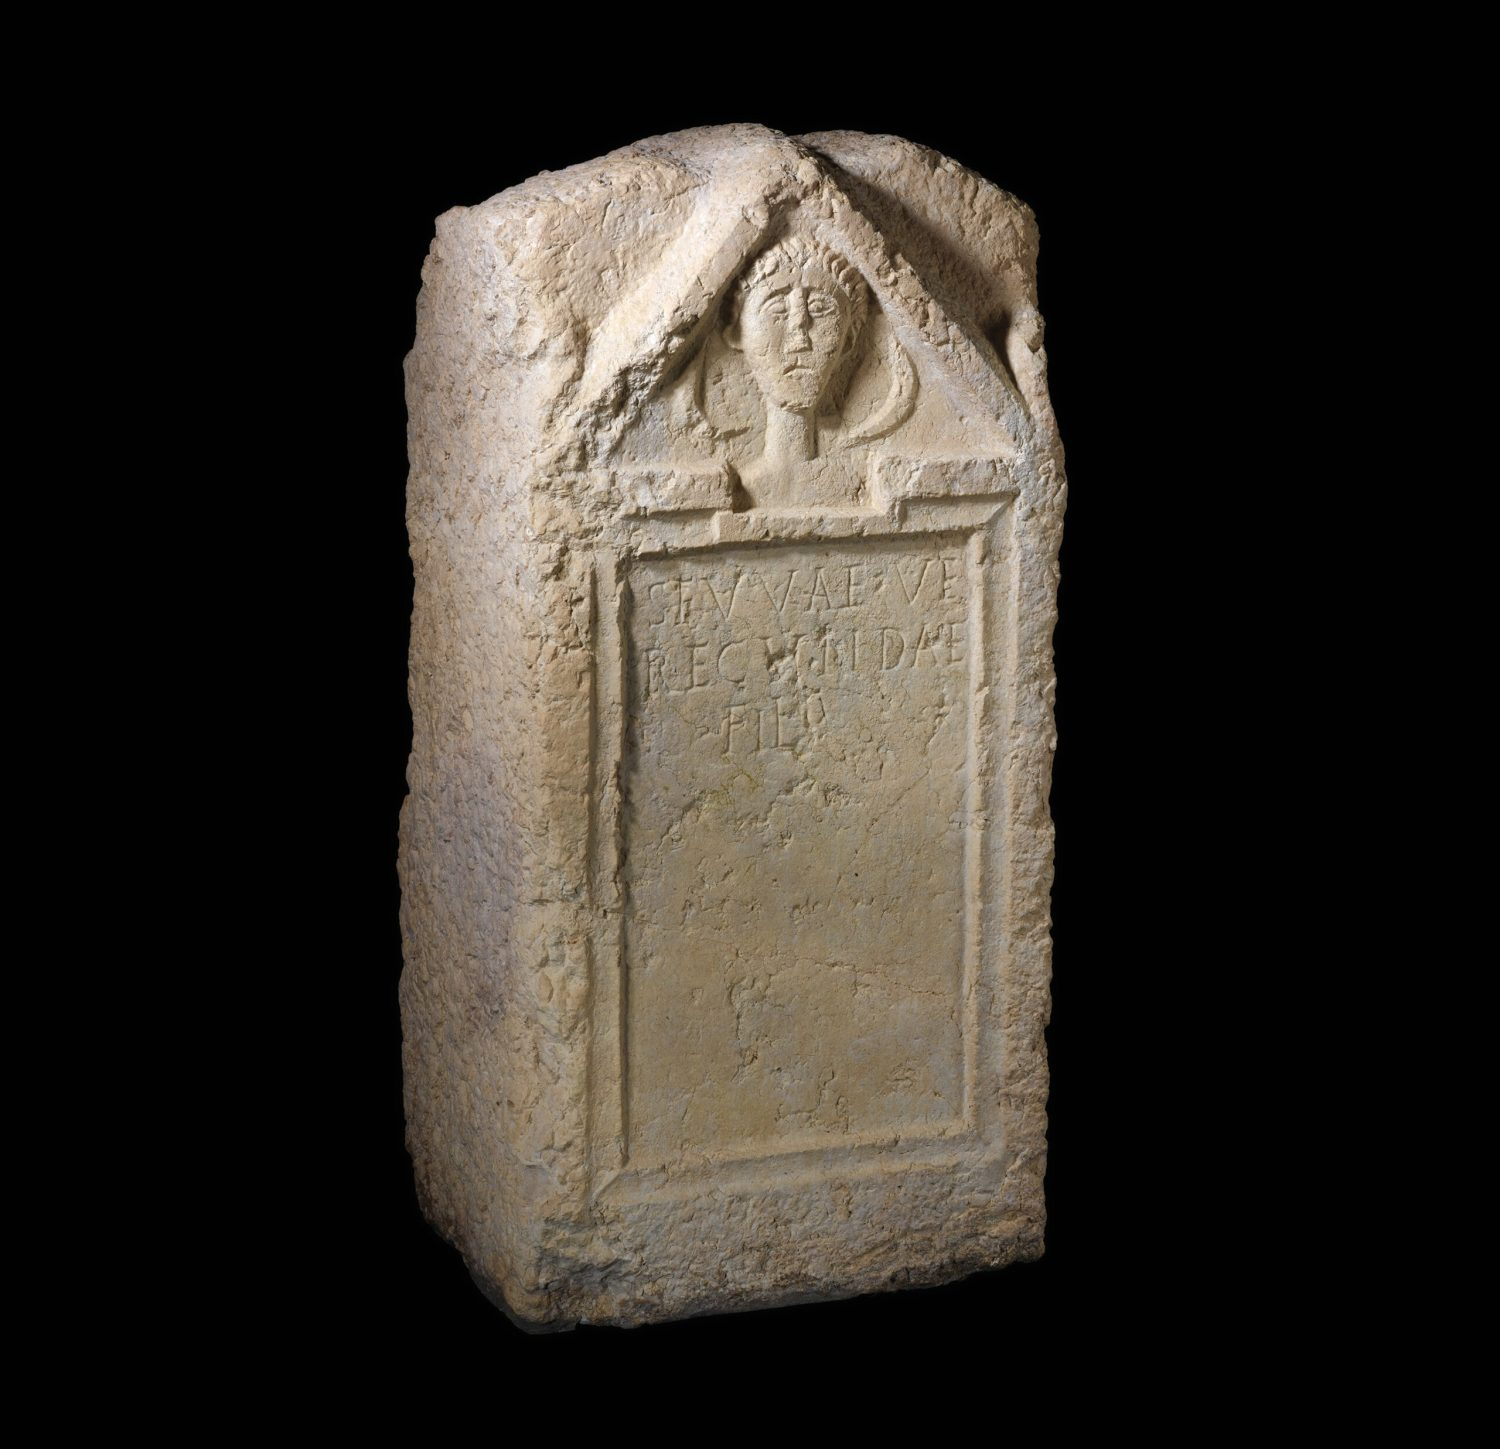 OPPOSITE Roman inscriptions found in Geneva reveal much about the lives of some of the women who lived there. This example, a tombstone for Sevva, daughter of Verecunda, is also notable for featuring the earliest surviving image of a Genevan woman. It probably dates to the 1st century AD, although a 3rd-century AD origin has also been proposed. The curving shapes beside Sevva's face are generally seen as crescent moons a common Gallo-Roman